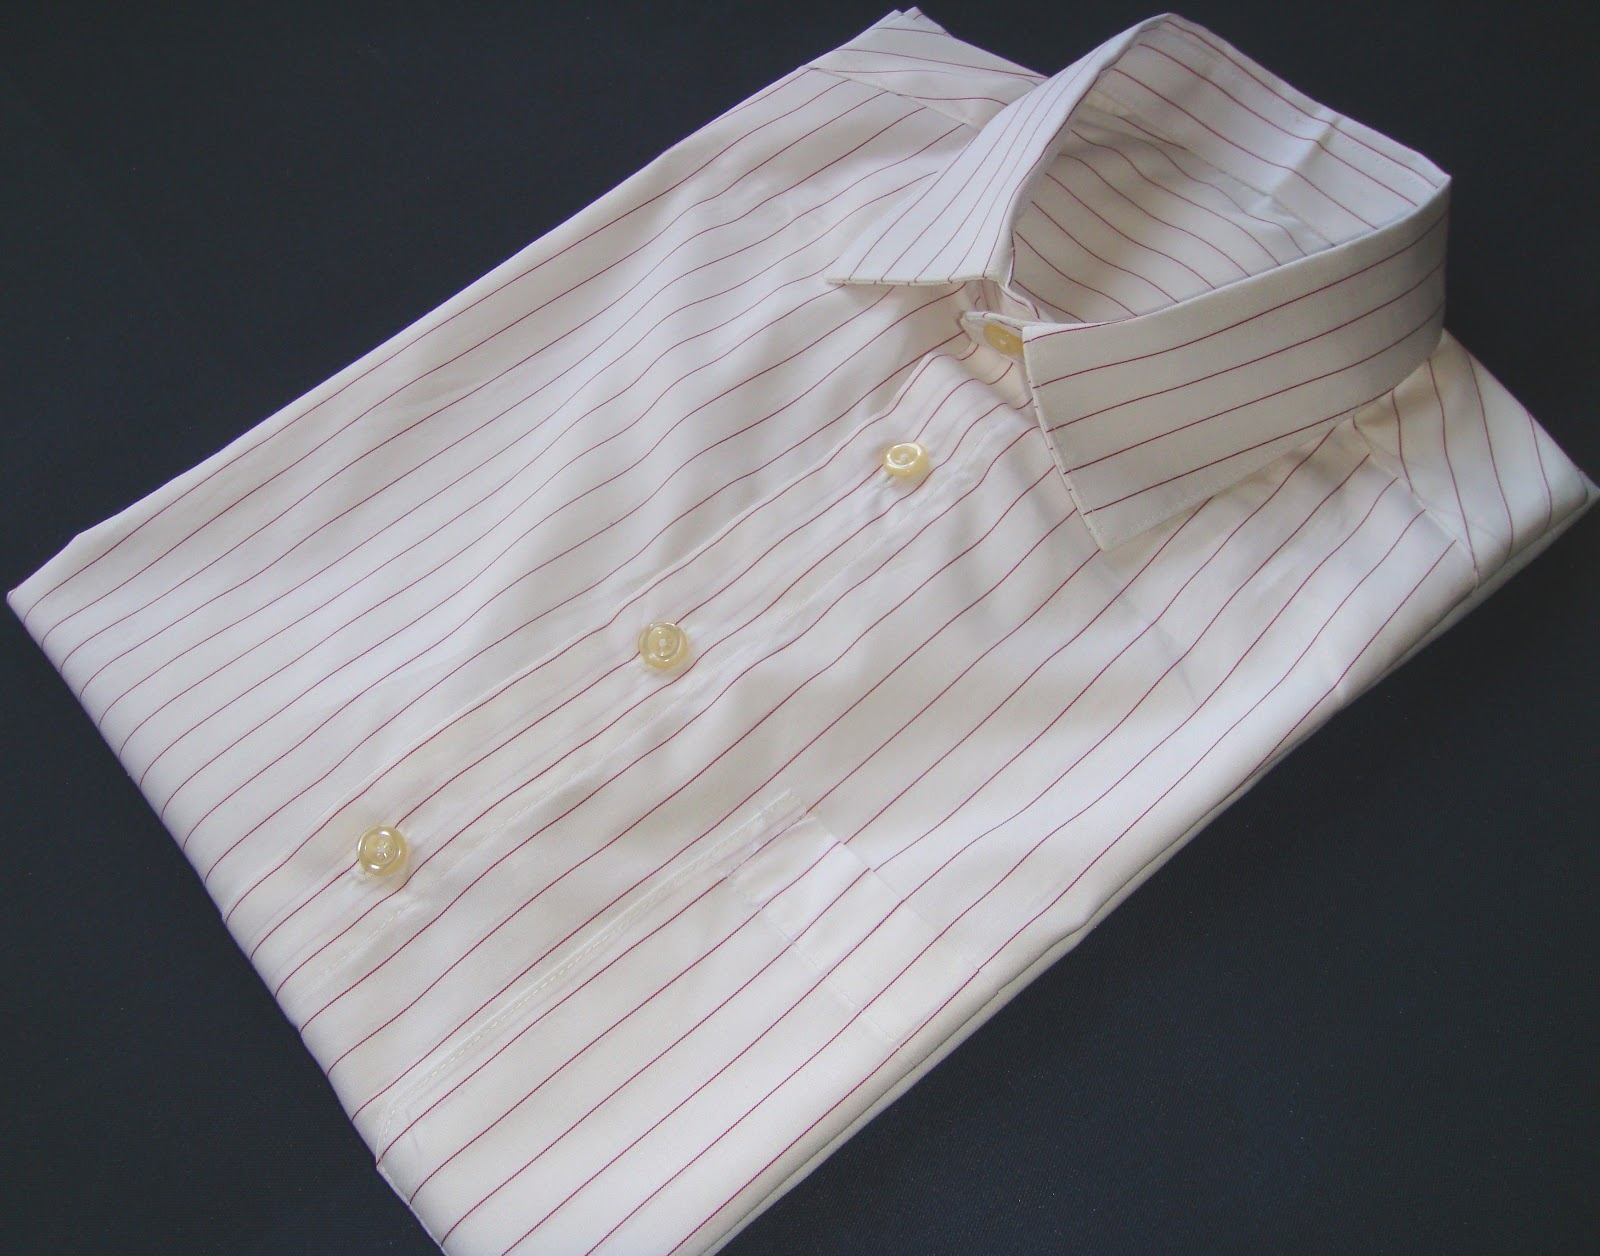 http://velvetribbonsew.blogspot.com/2013/01/mens-shirt.html